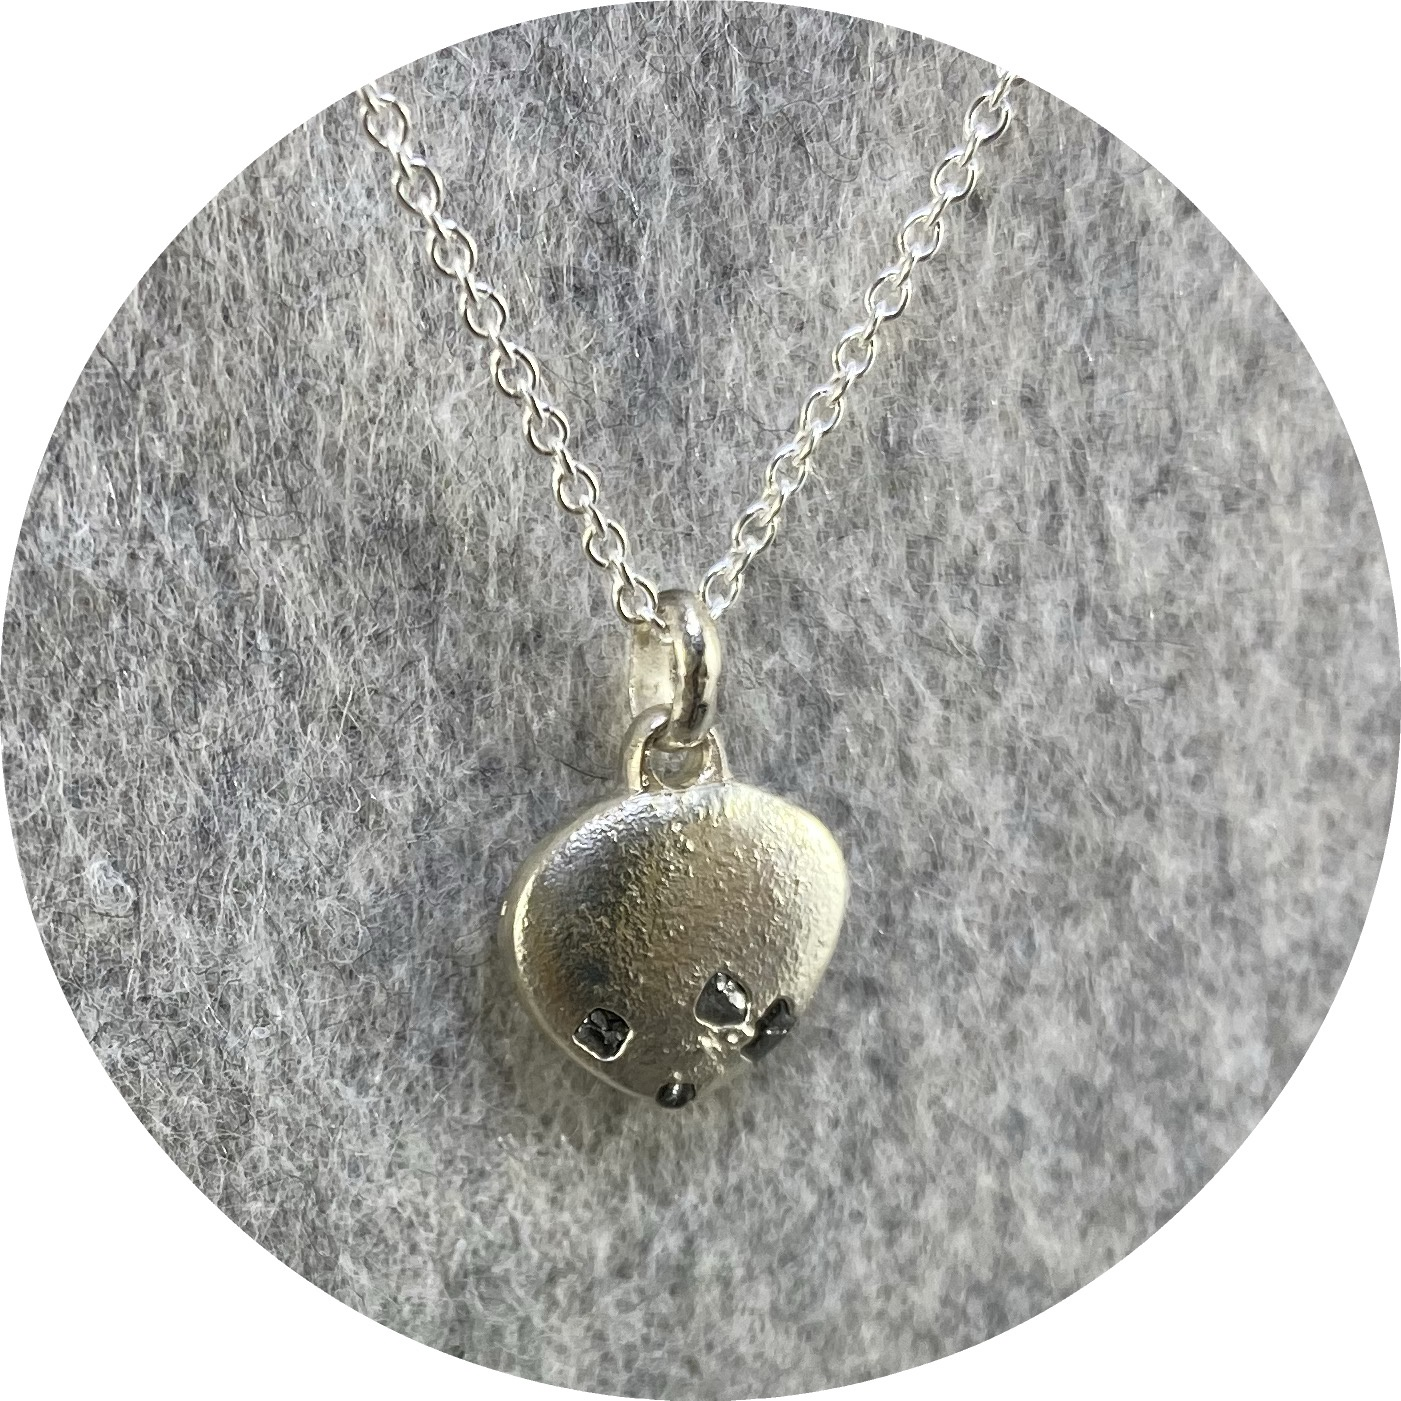 Kirra-Lea Caynes- Rough diamond and sterling silver pendant.